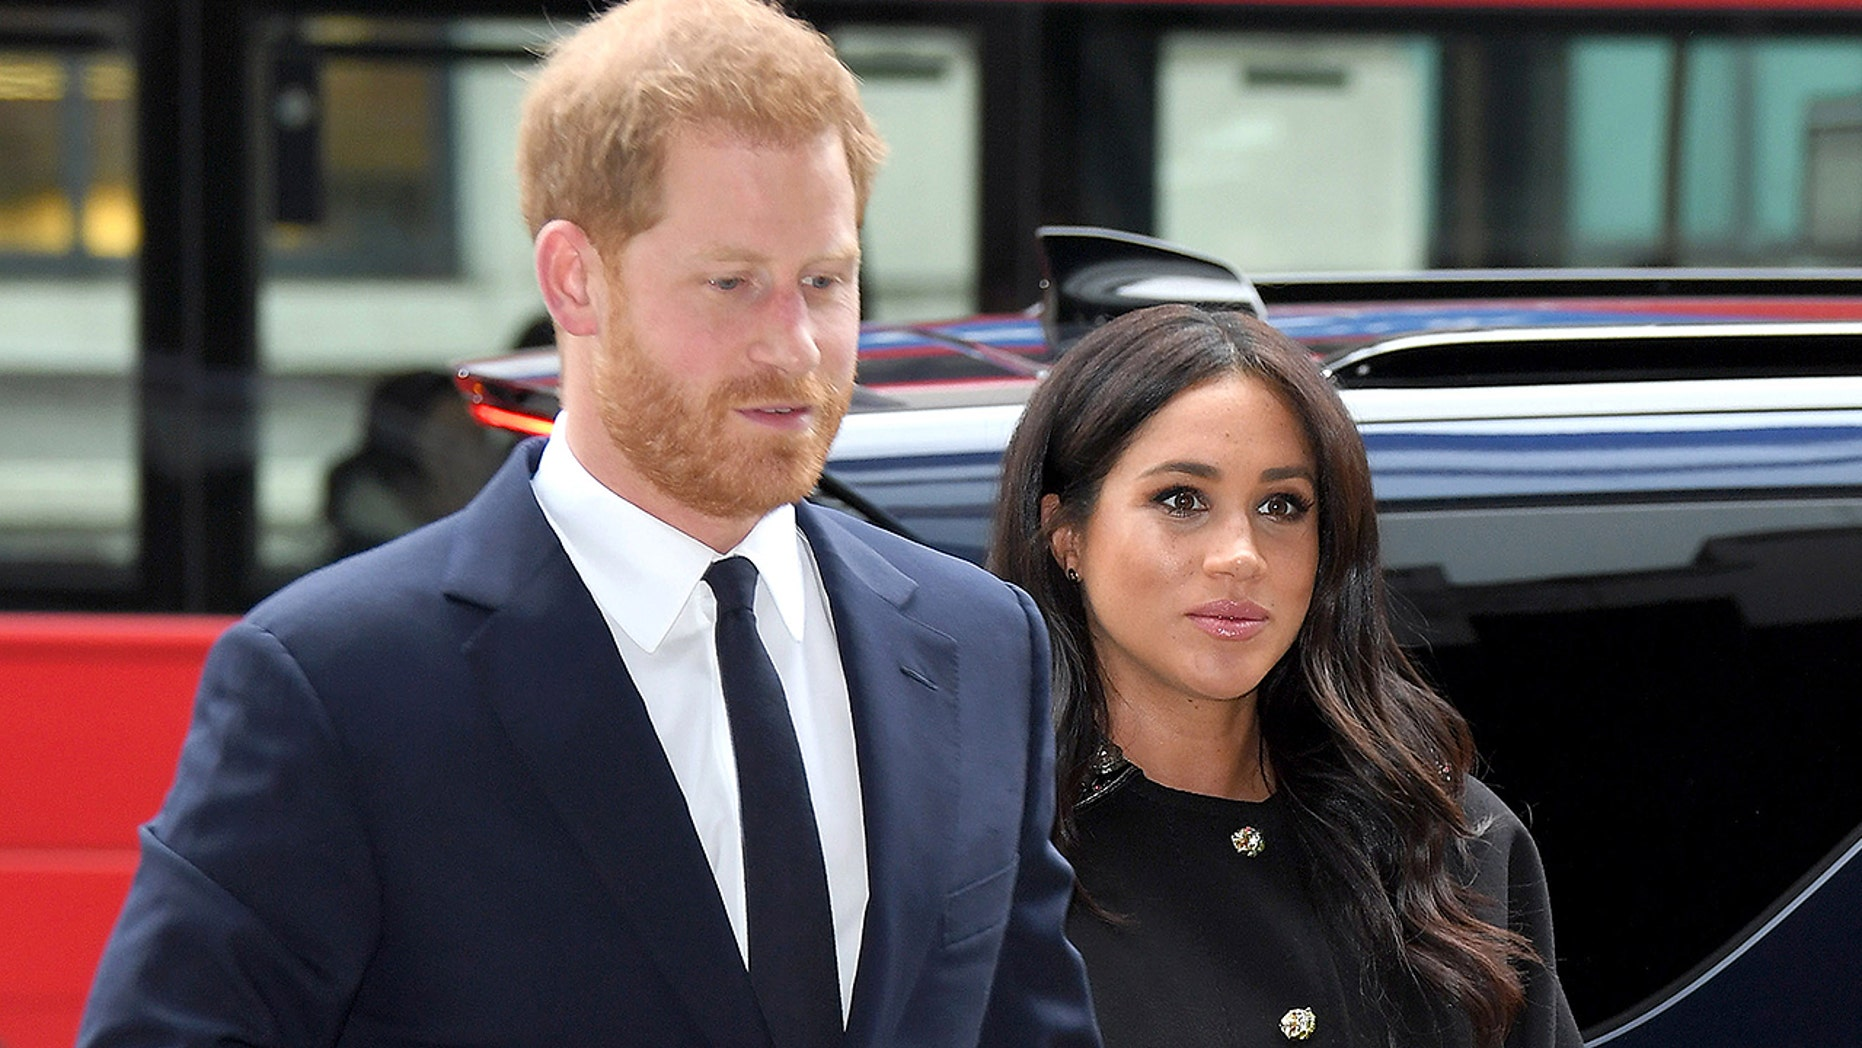 Meghan Markle and Prince Harry pay touching tribute to the Christchurch tragedy